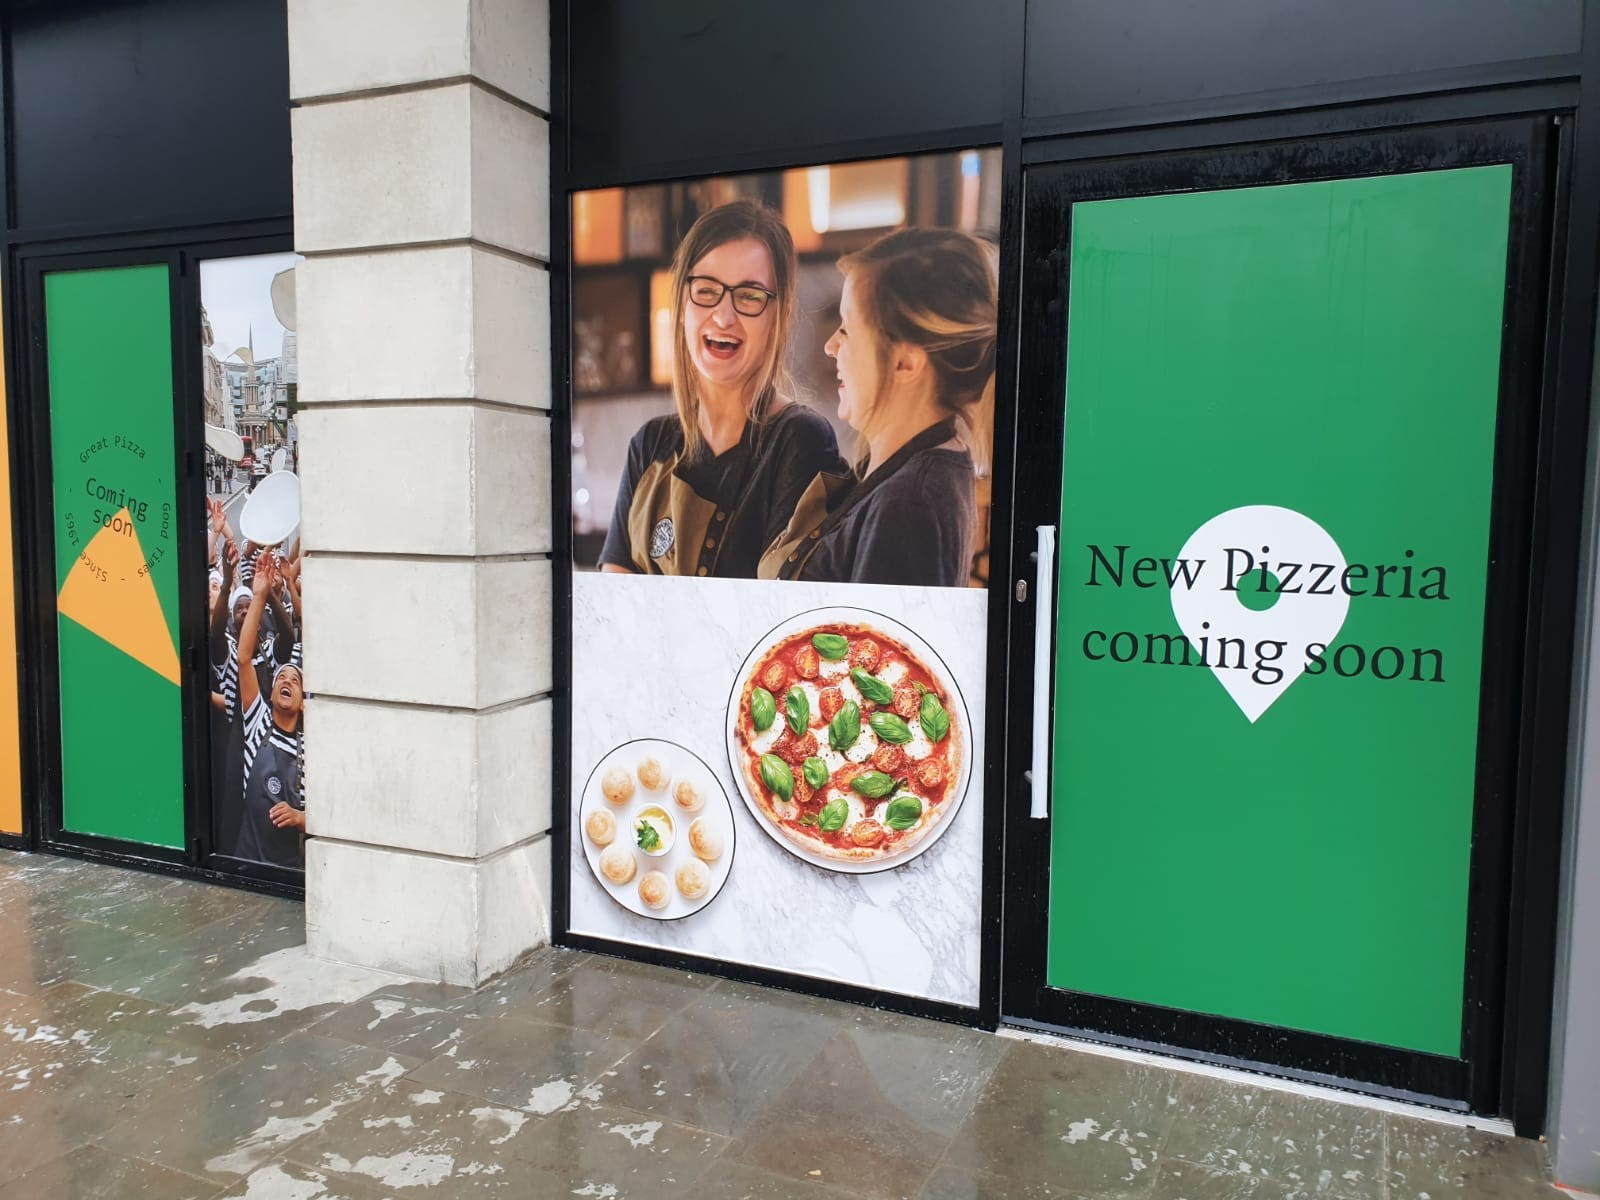 Opening Date Announced For Bradfords New Pizza Express